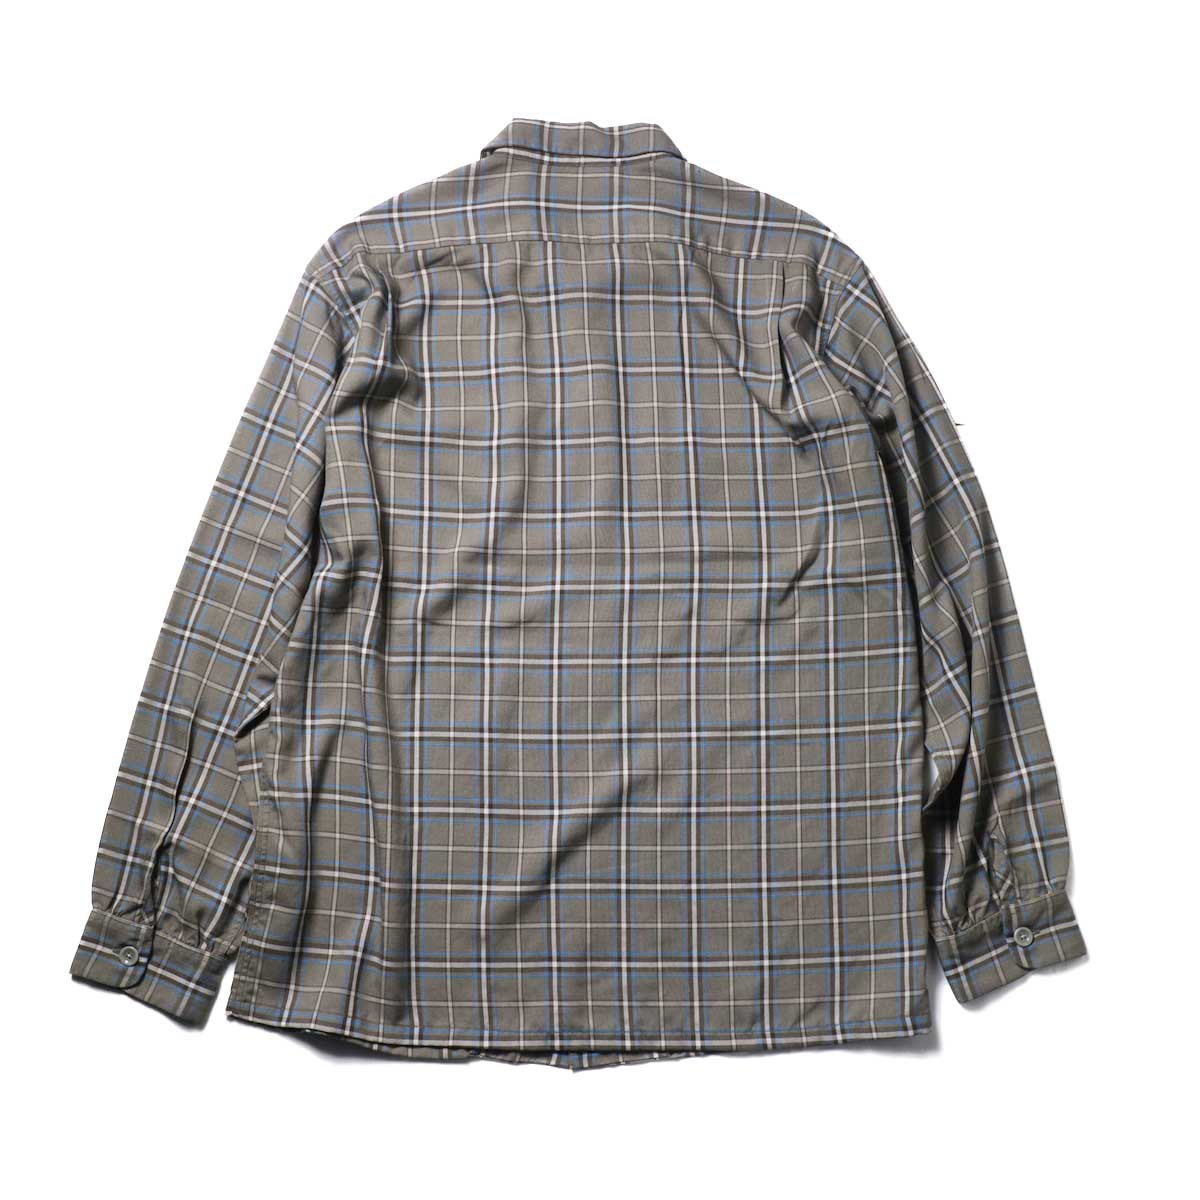 TOWN CRAFT / CLASSIC CHECK OPEN SHIRTS (Gray)背面